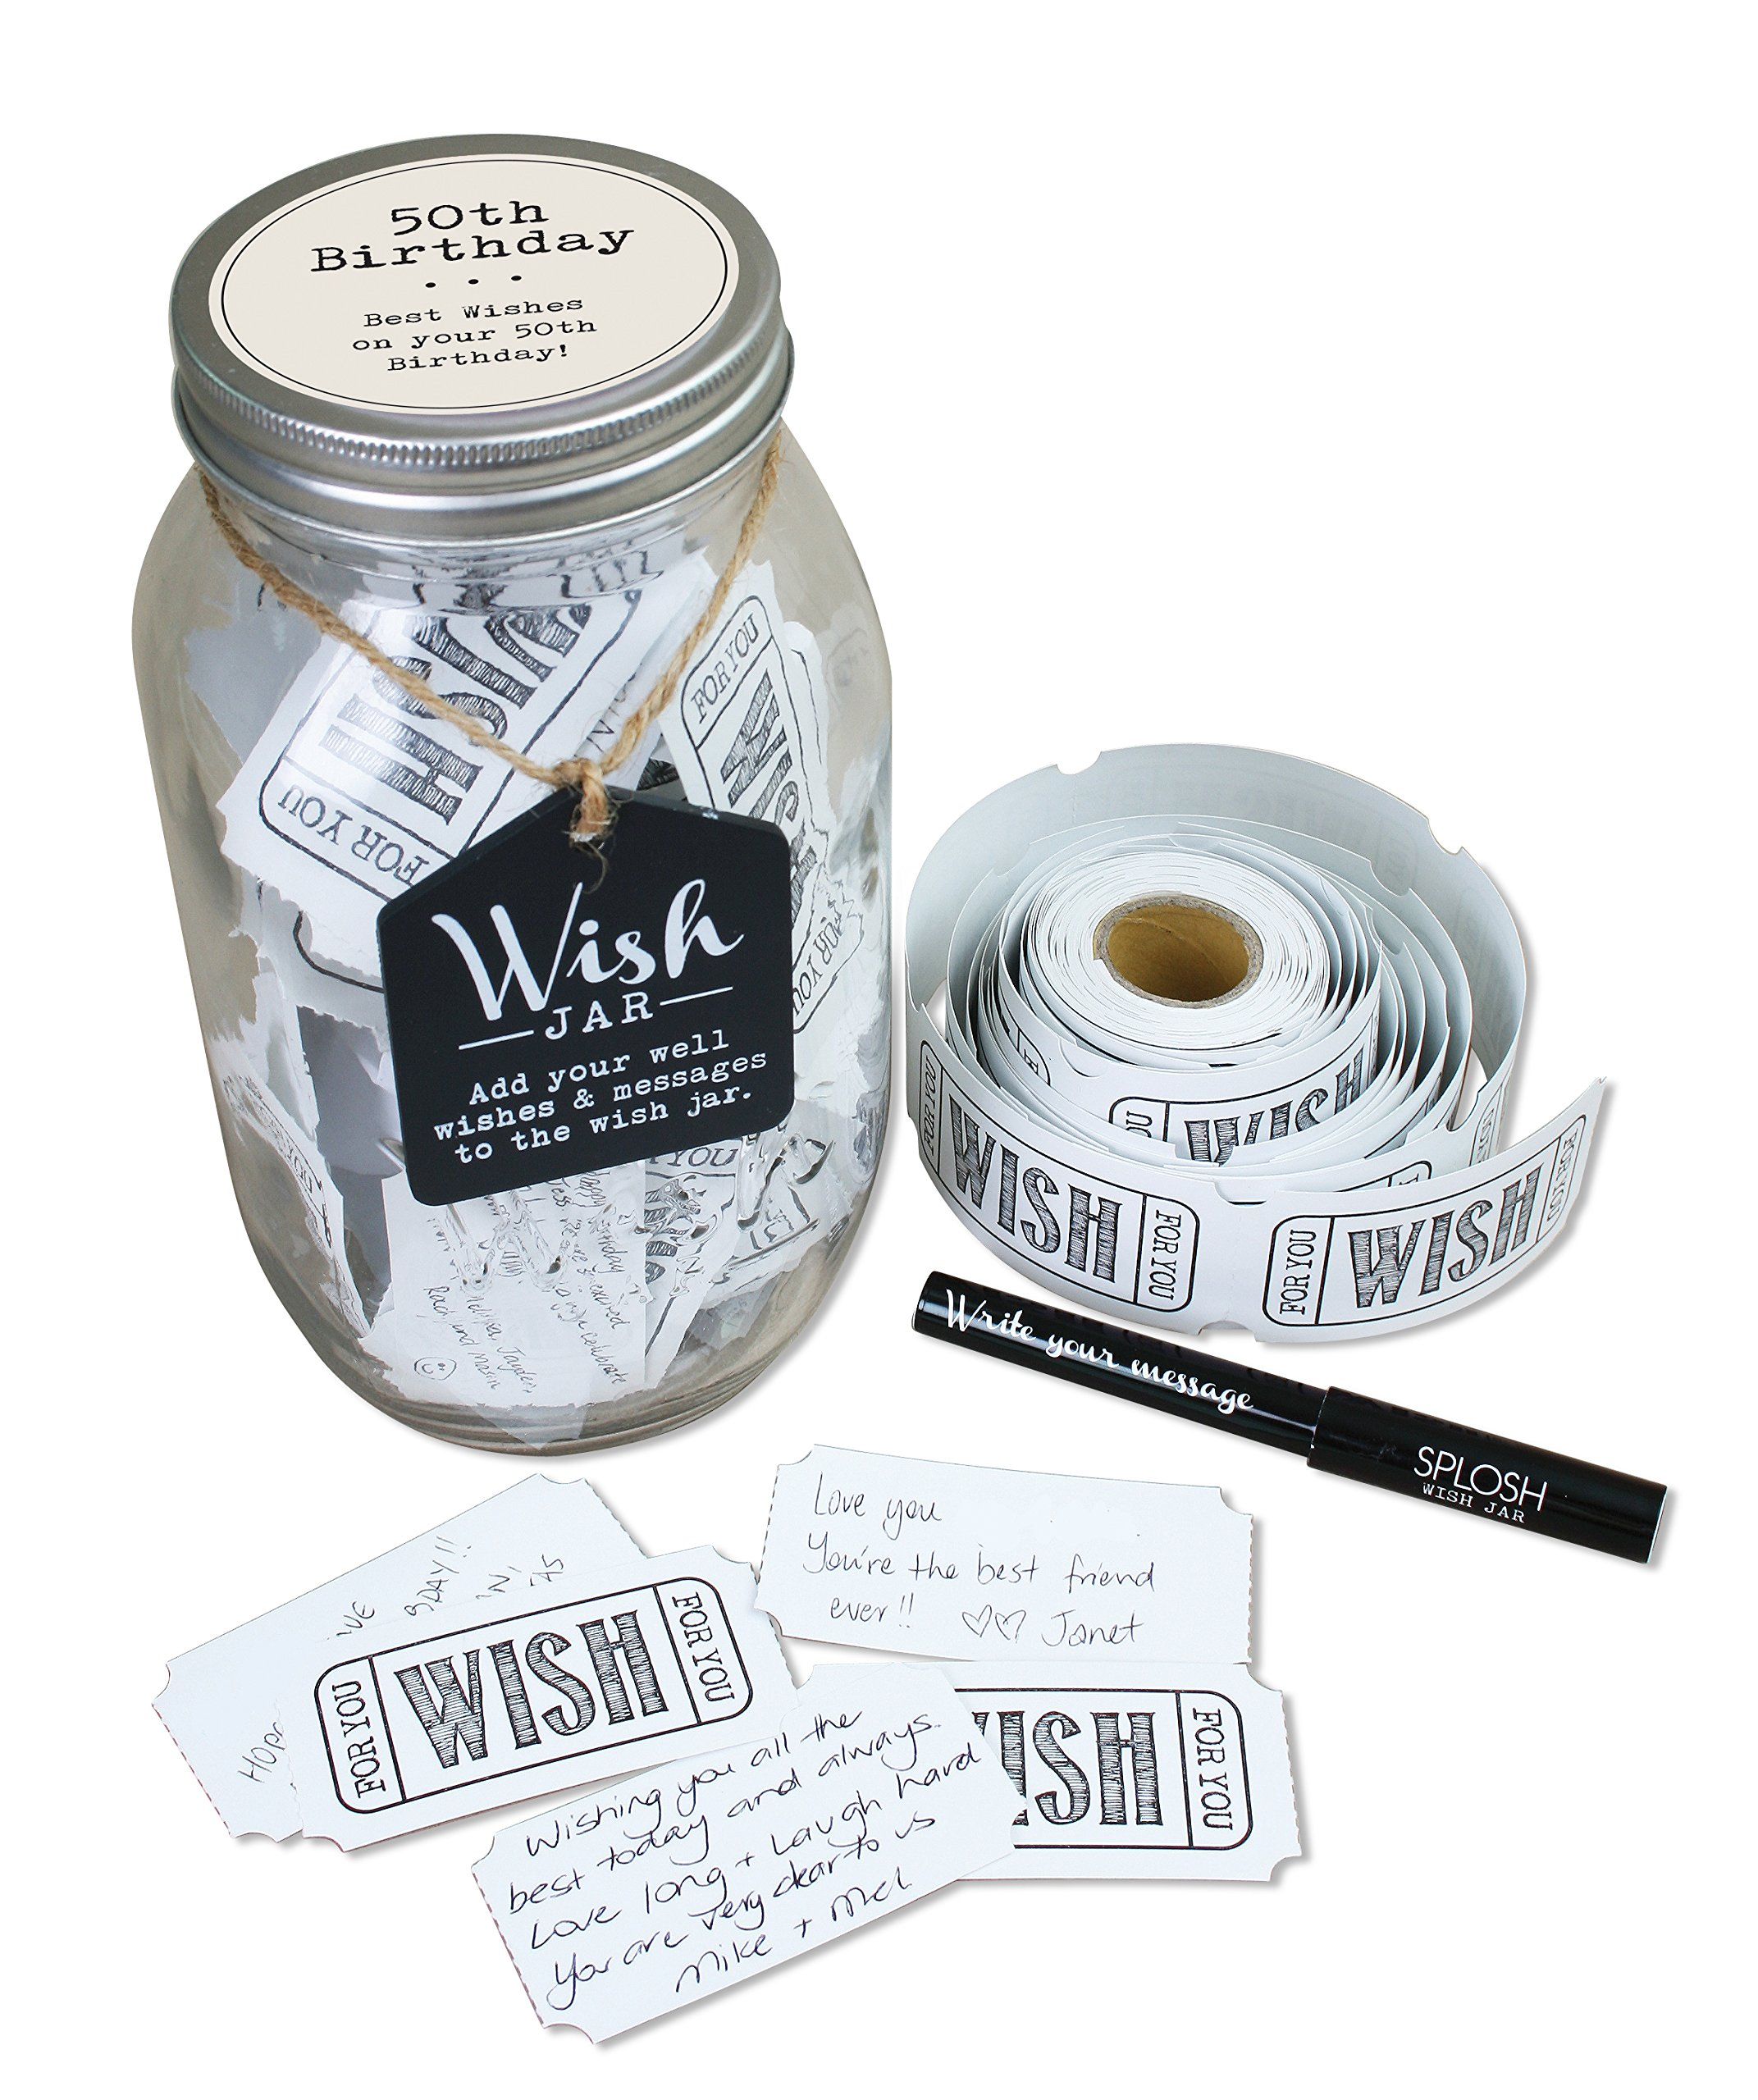 Details About Top Shelf 50th Birthday Wish Jar Unique And Thoughtful Gift Ideas For Friends